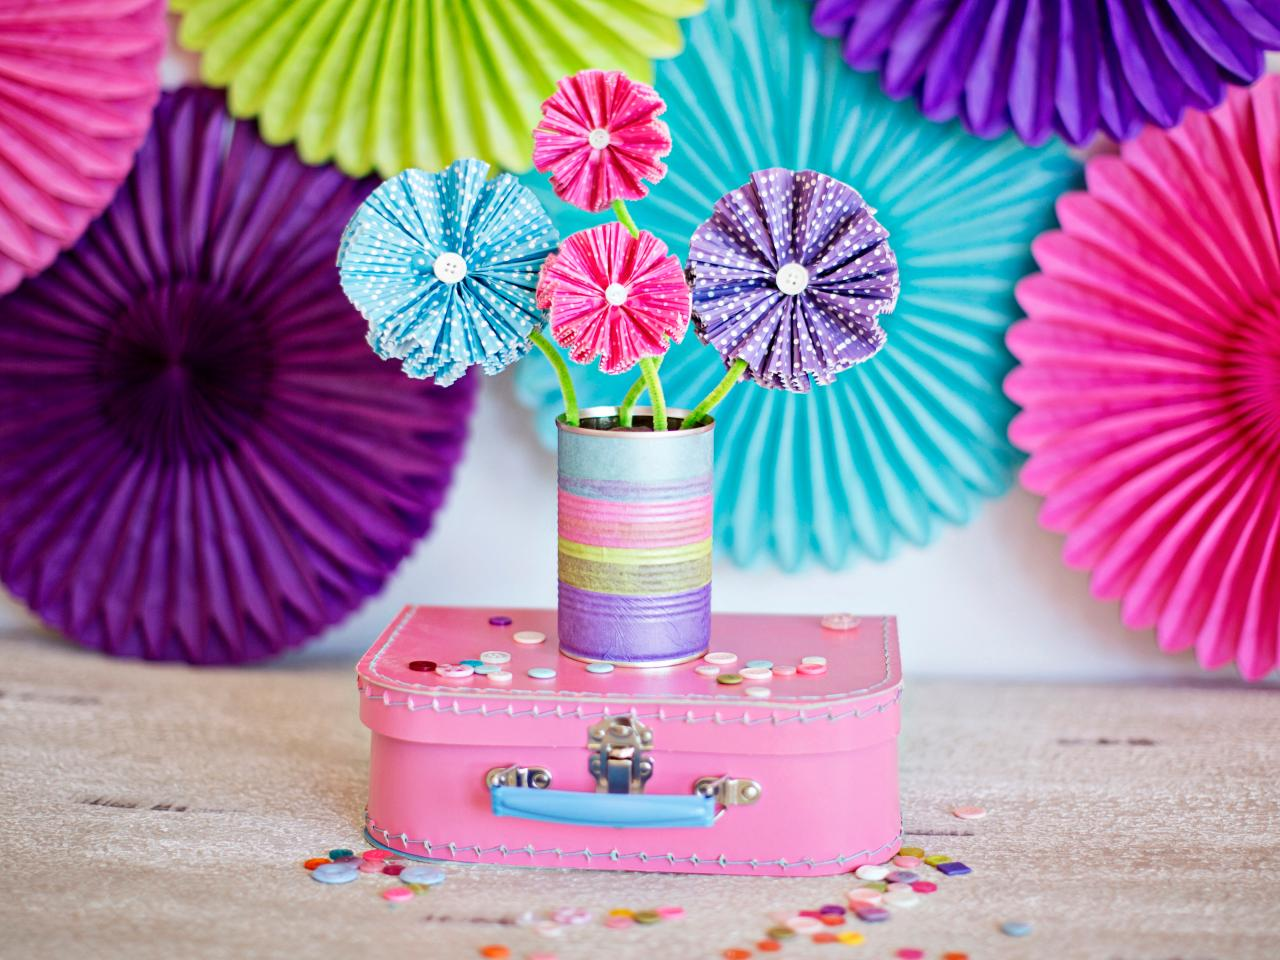 25 Cool Things To Make With Papers